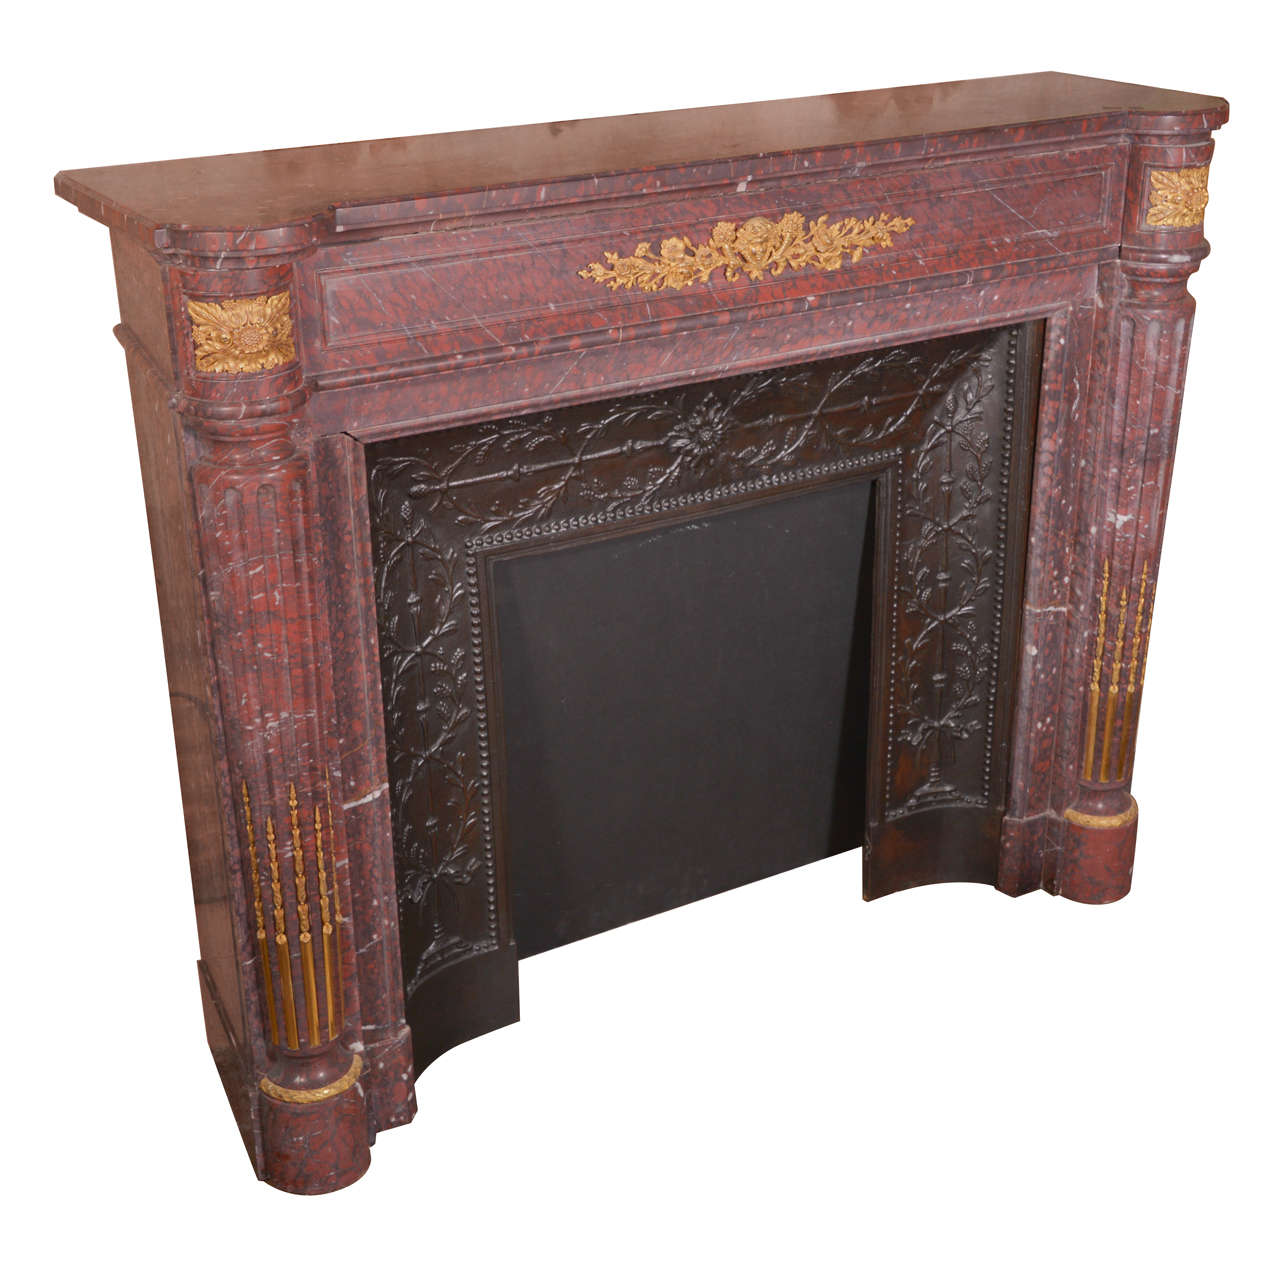 19th c, French Napoleon III Mantel